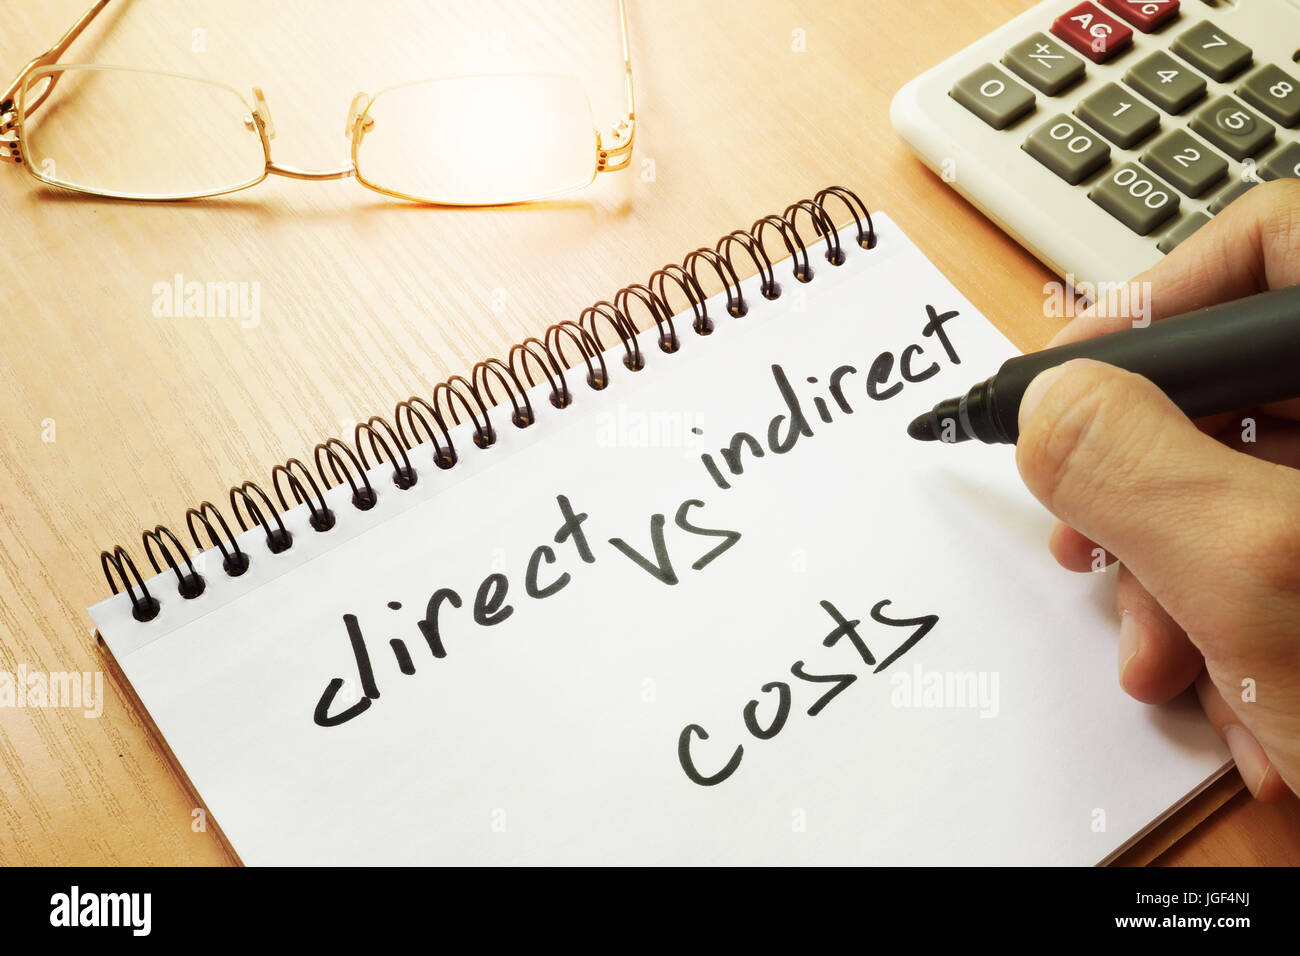 Direct vs indirect costs written by hand in a note. - Stock Image